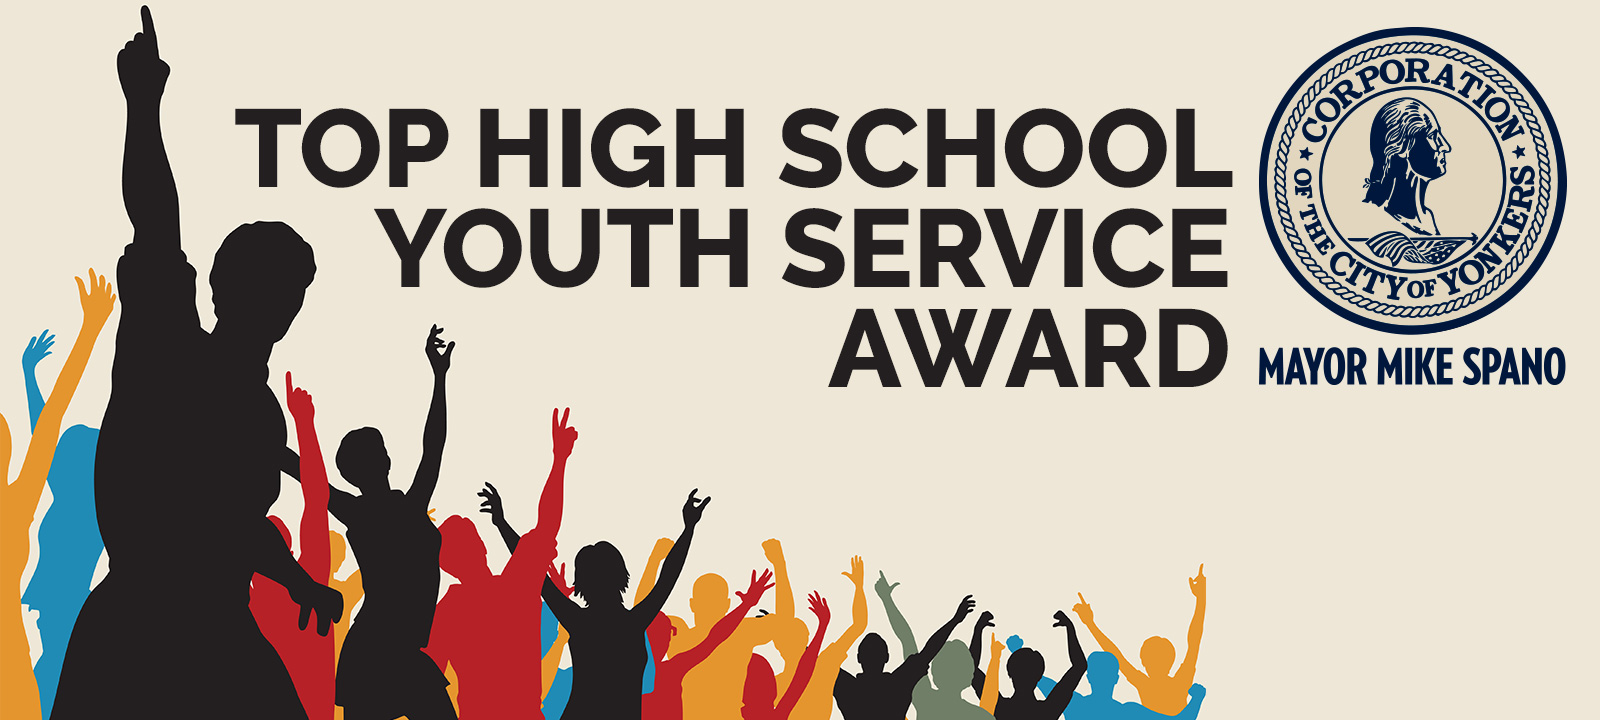 TOP-HIGH-SCHOOL-YOUTH-SERVICE-AWARD-BANNER